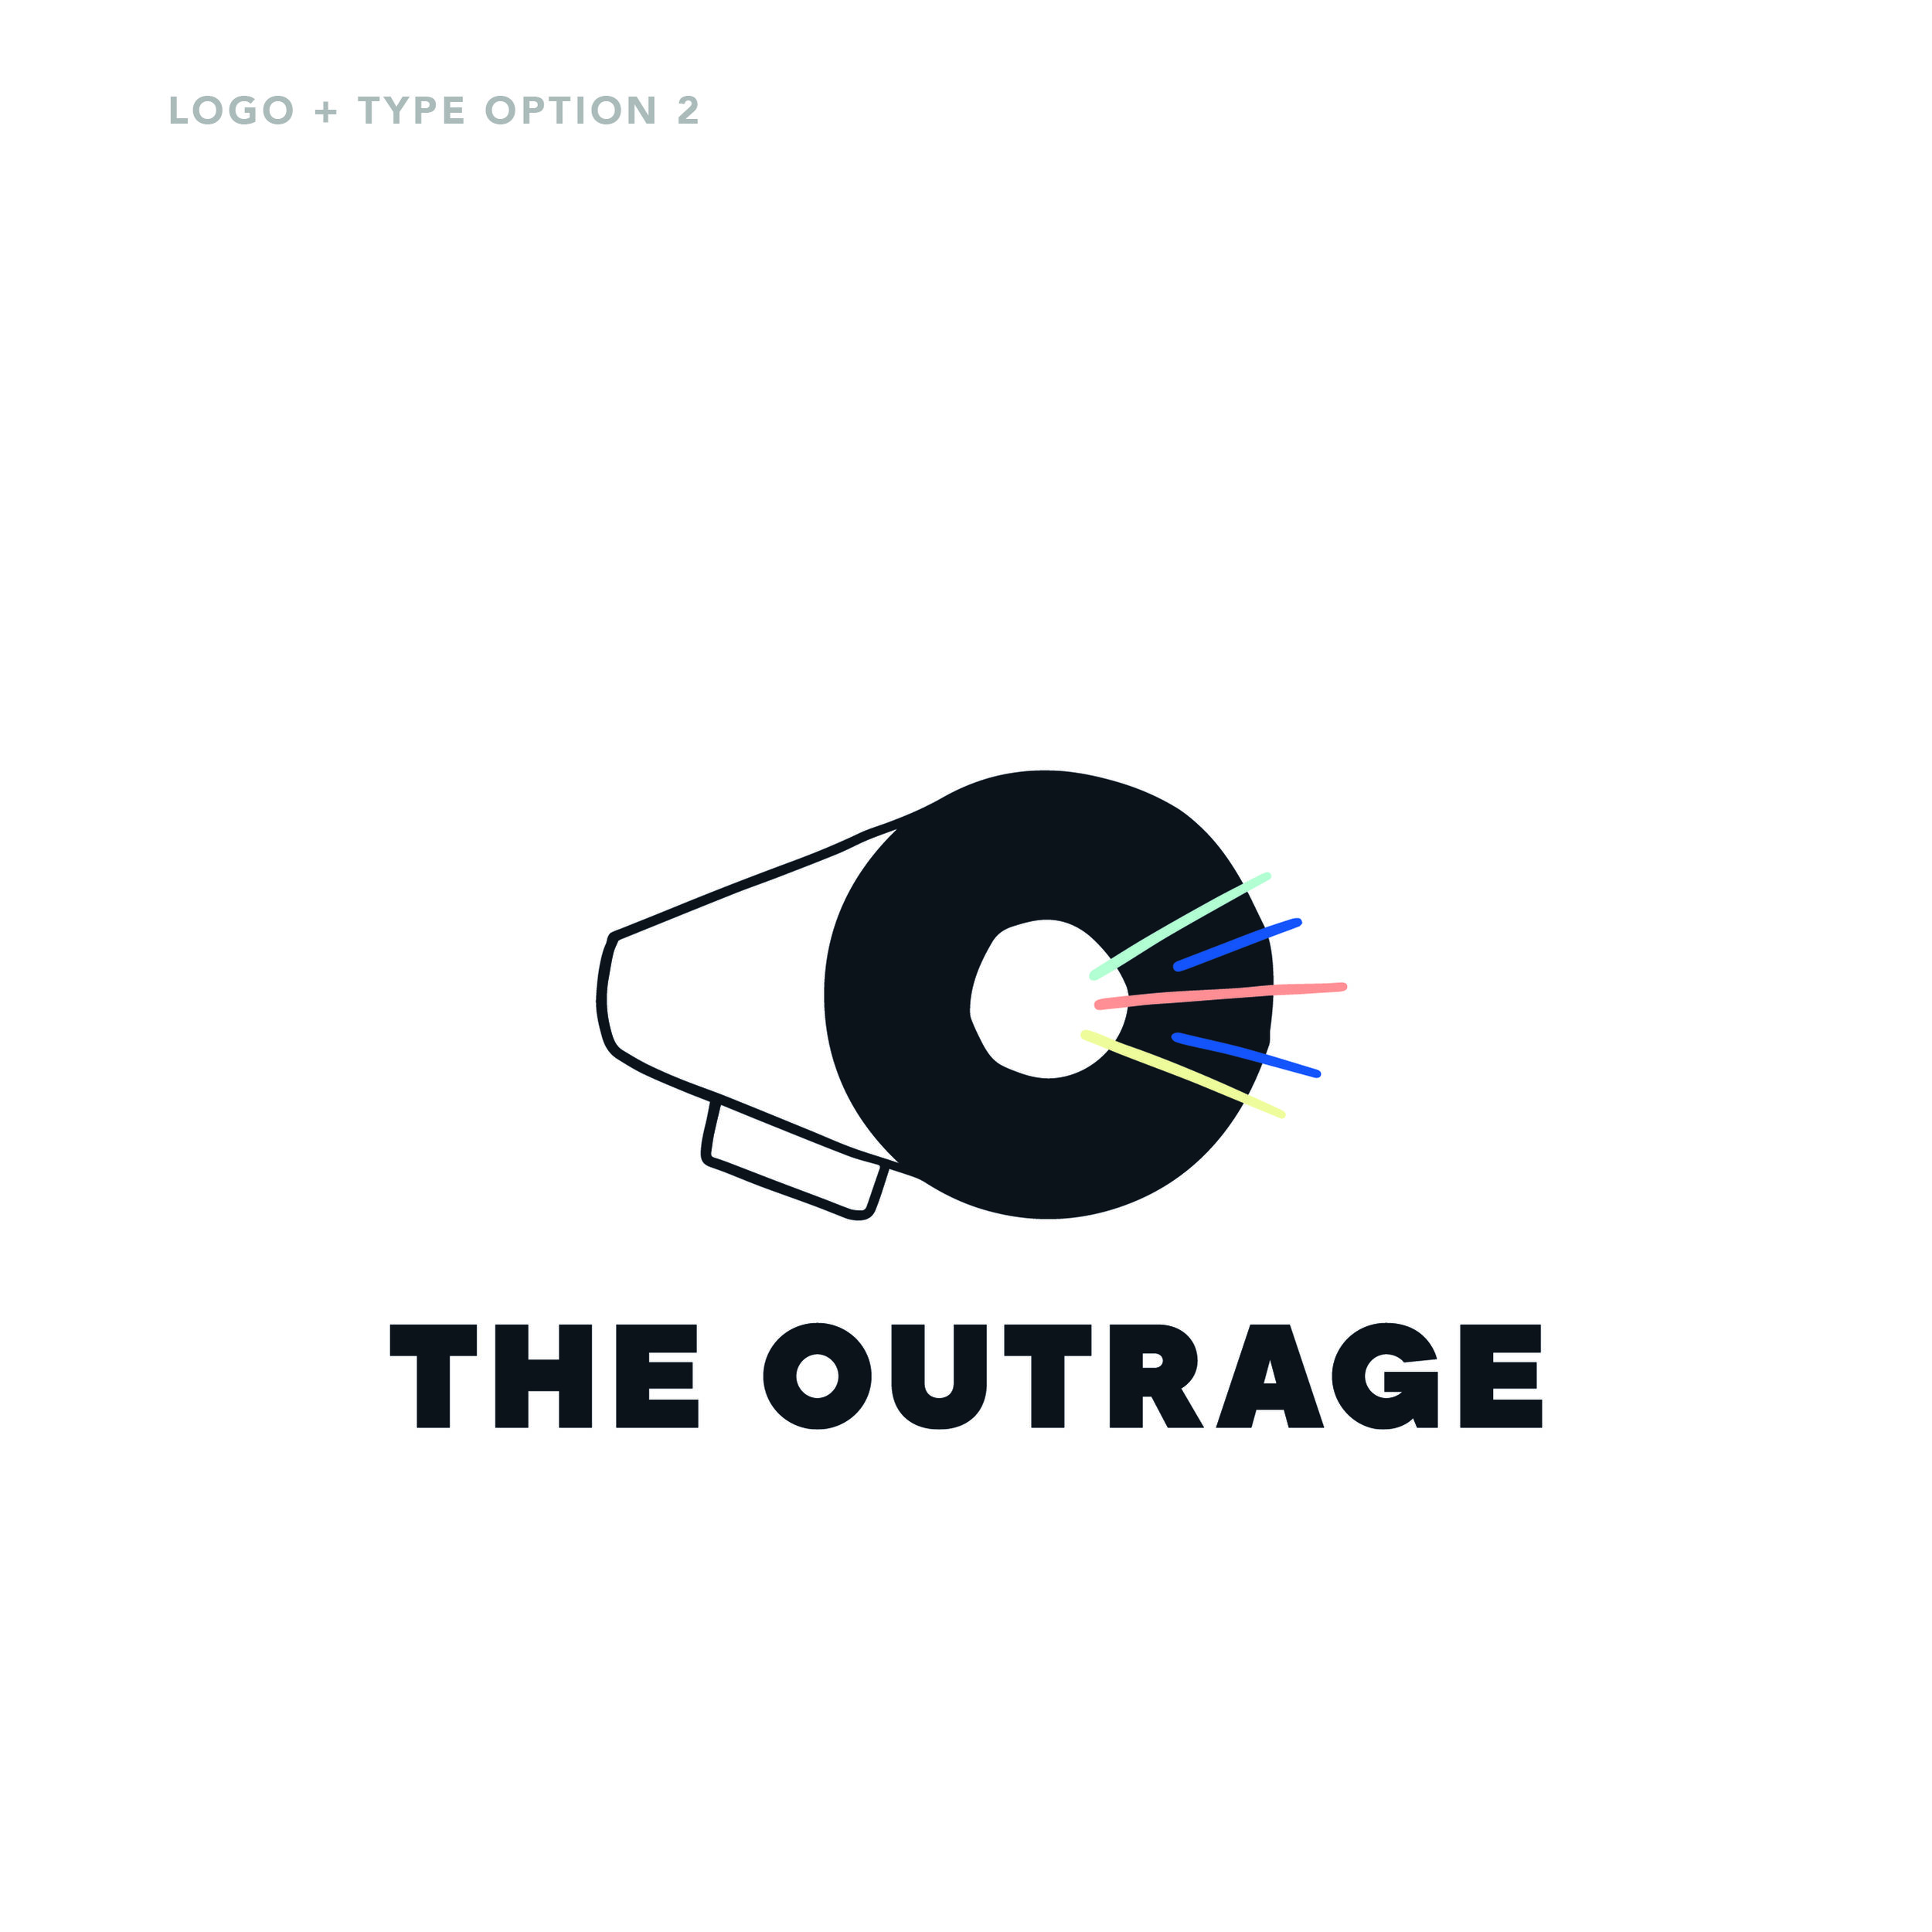 The Outrage_Logo_Logo + Type Option 2.jpg